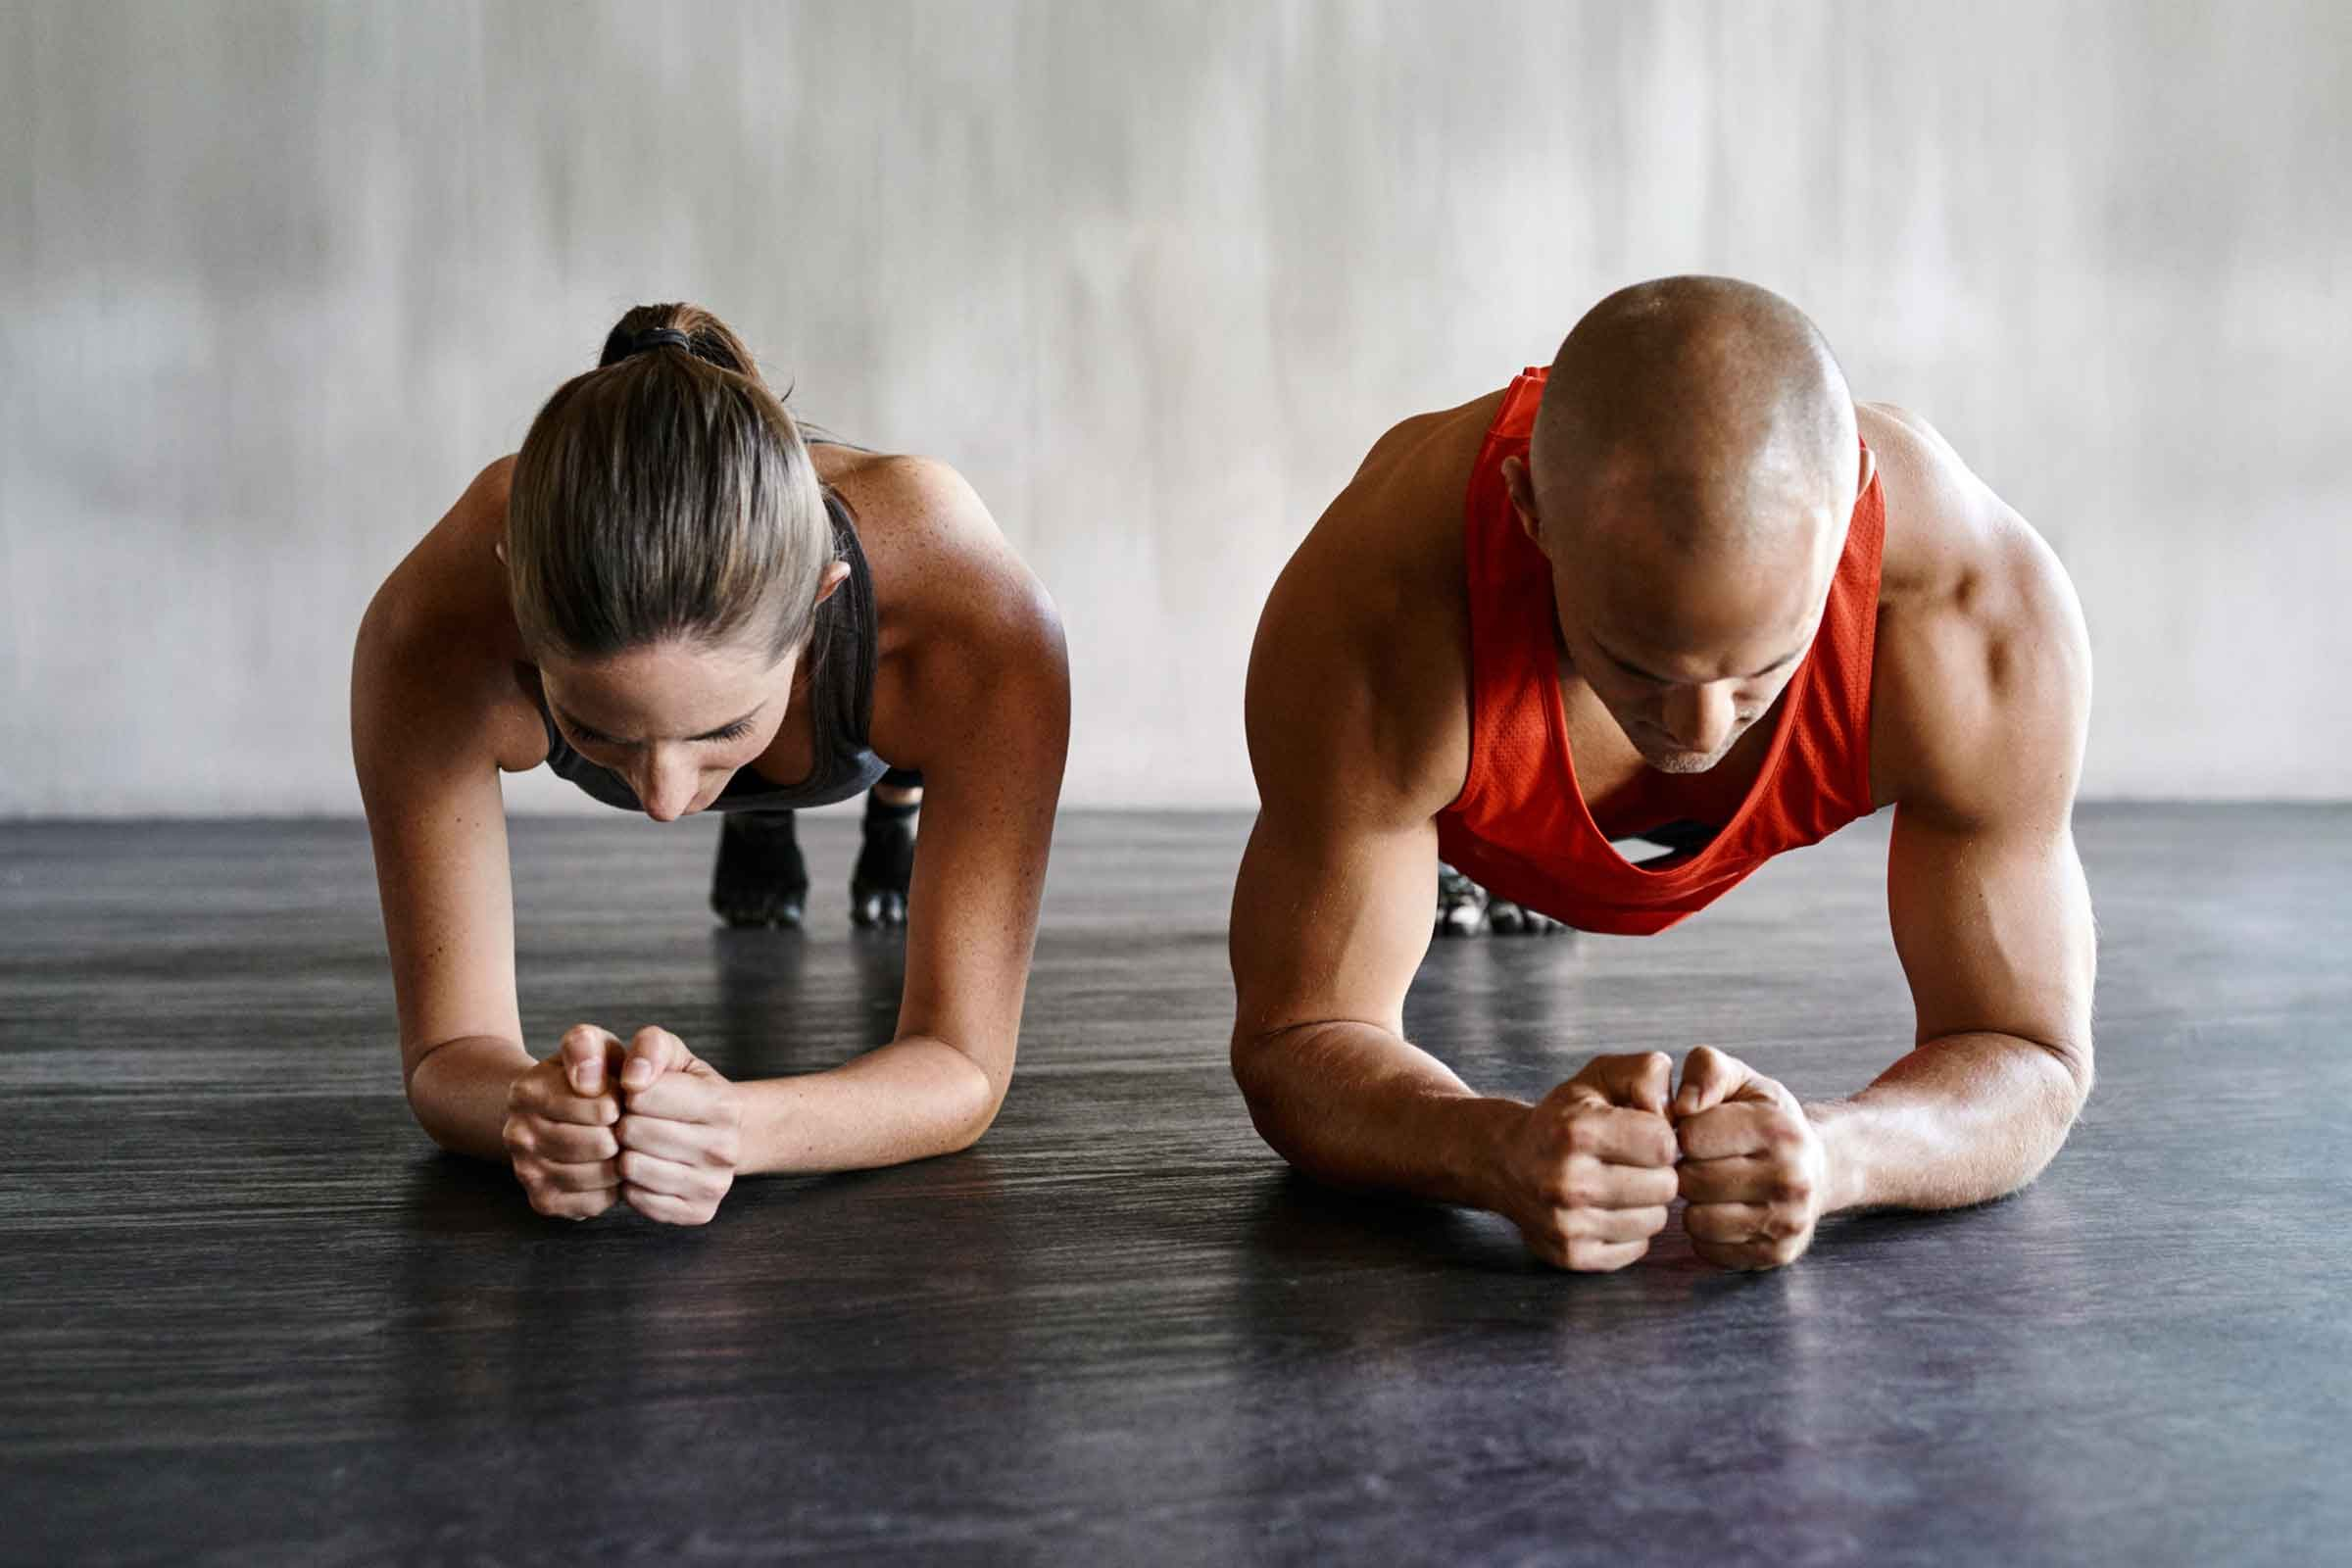 Forum on this topic: The Best Moves For Healthy Shoulders, the-best-moves-for-healthy-shoulders/